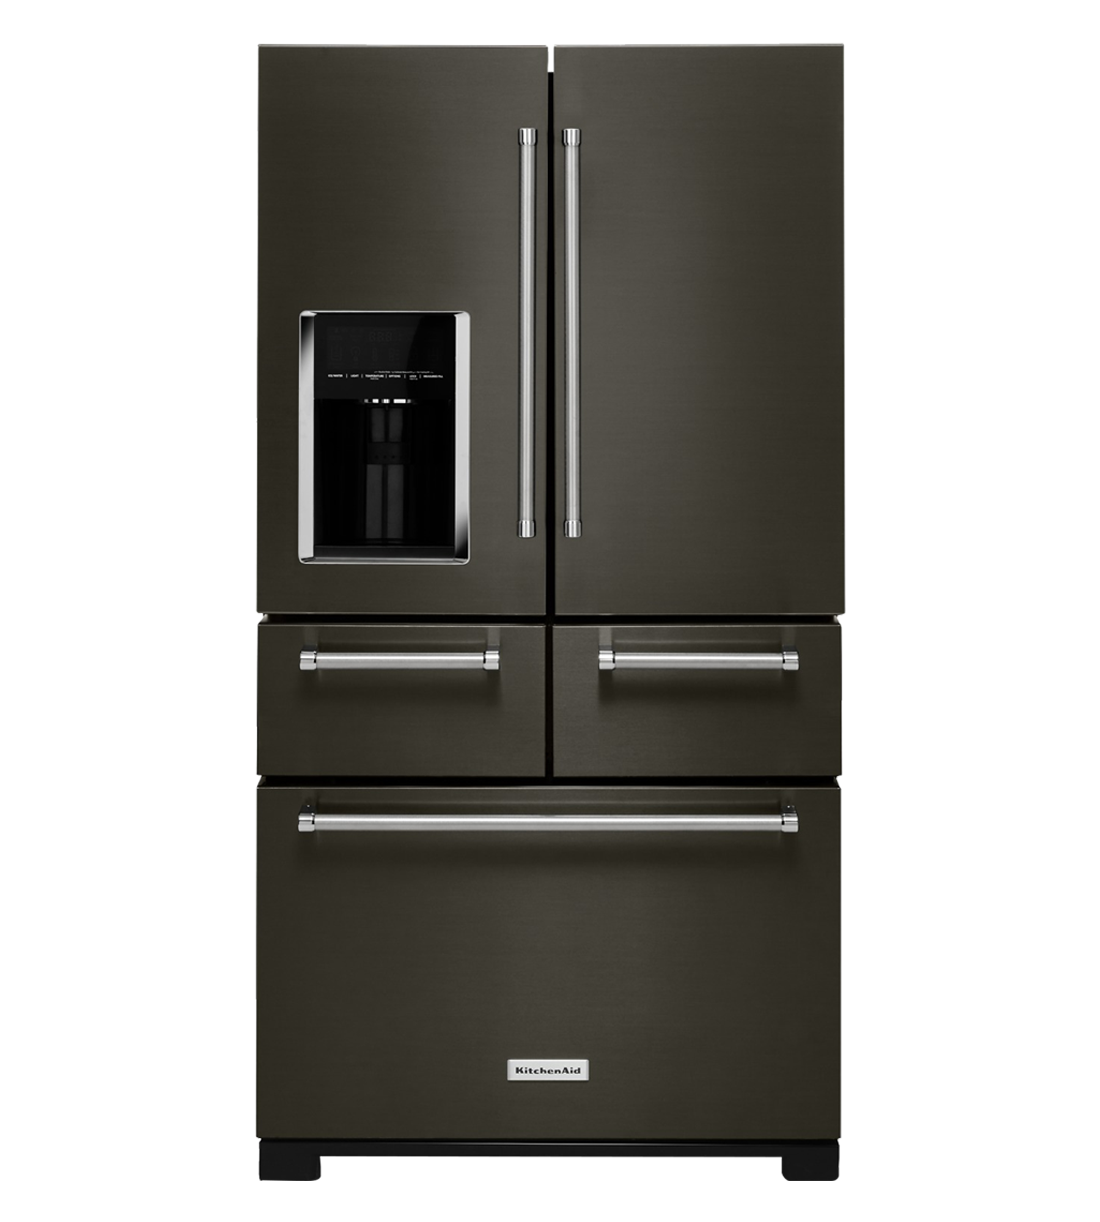 KitchenAid Refrigerator 36 KRMF706E in Black Stainless Steel color showcased by Corbeil Electro Store